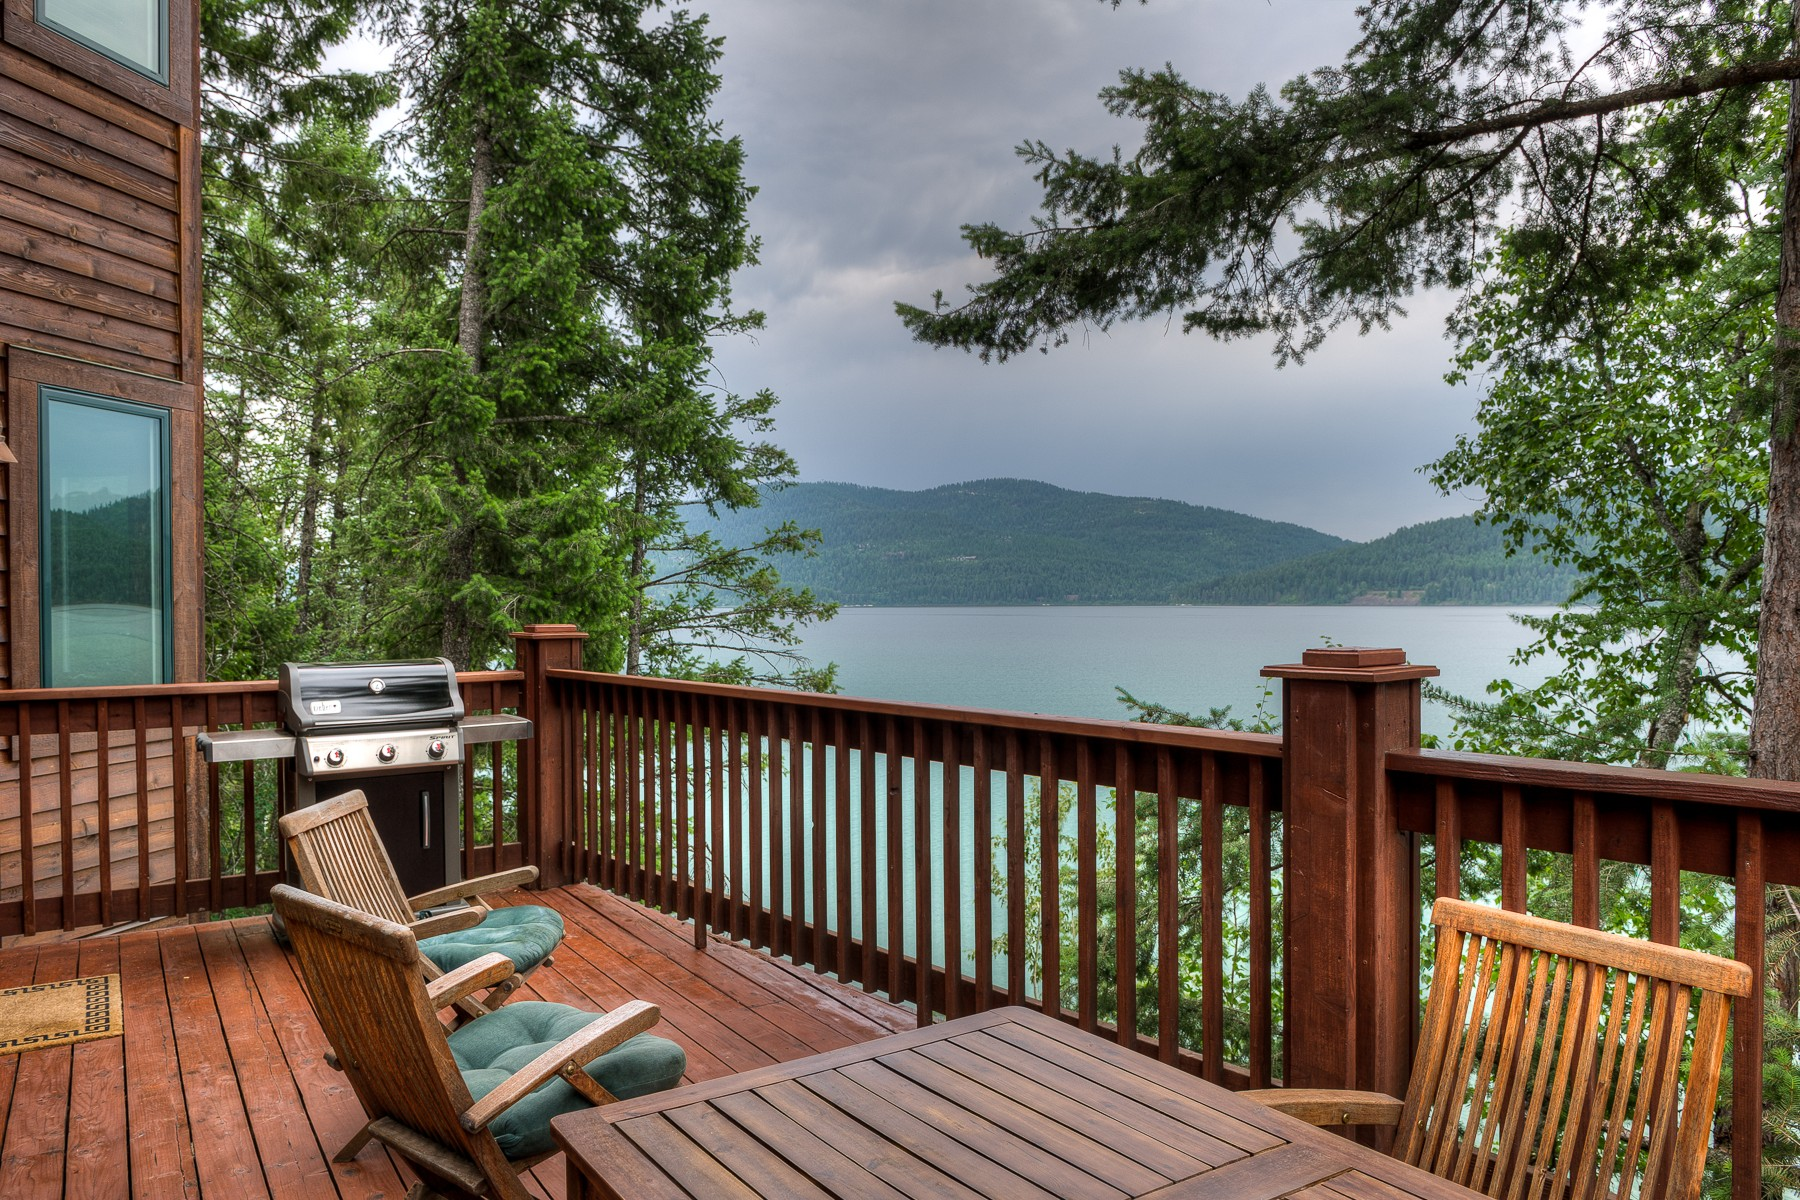 Additional photo for property listing at 206 Jennings Lakeside Rd , Whitefish, MT 59937 206  Jennings Lakeside Rd Whitefish, Montana 59937 United States